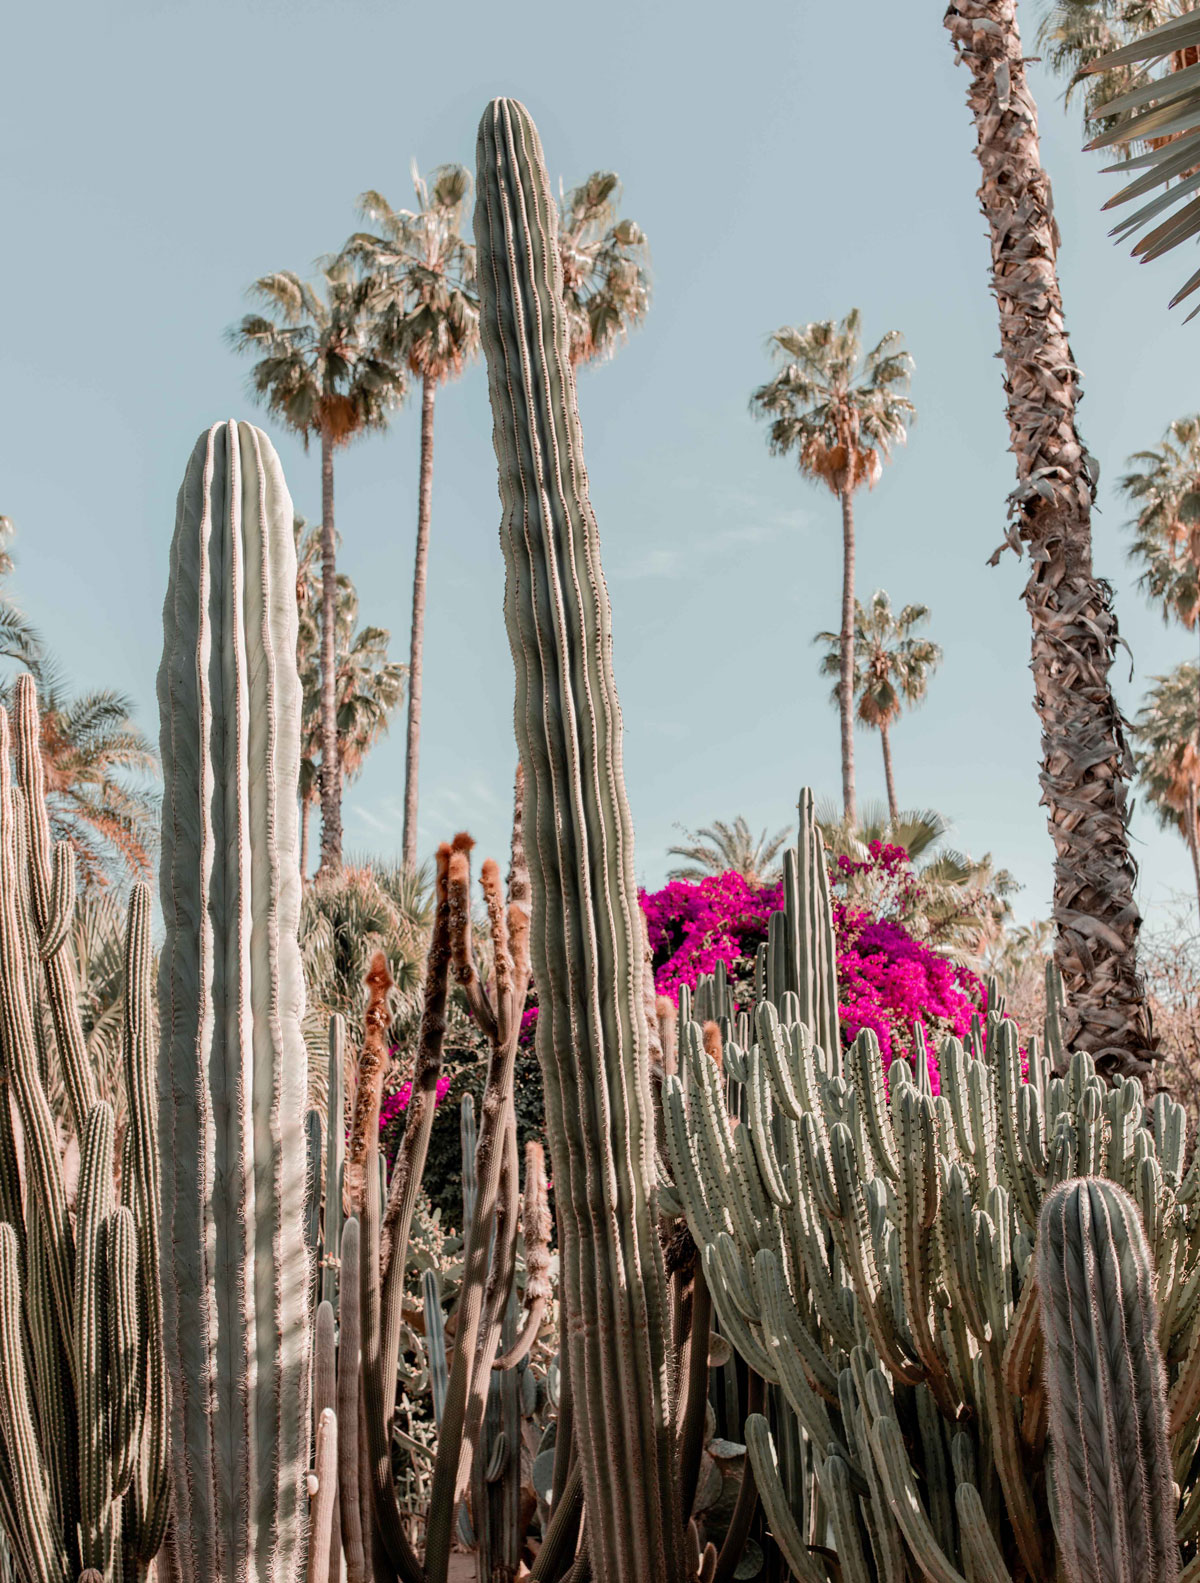 2-Top-things-to-do-in-marrakech-Bucket-list-kelseyinlondon-Kelsey-Heinrichs--What-to-do-in-marrakech--Where-to-go-in-marrakech-top-places-in-marrakech-le-jardin-majorelle